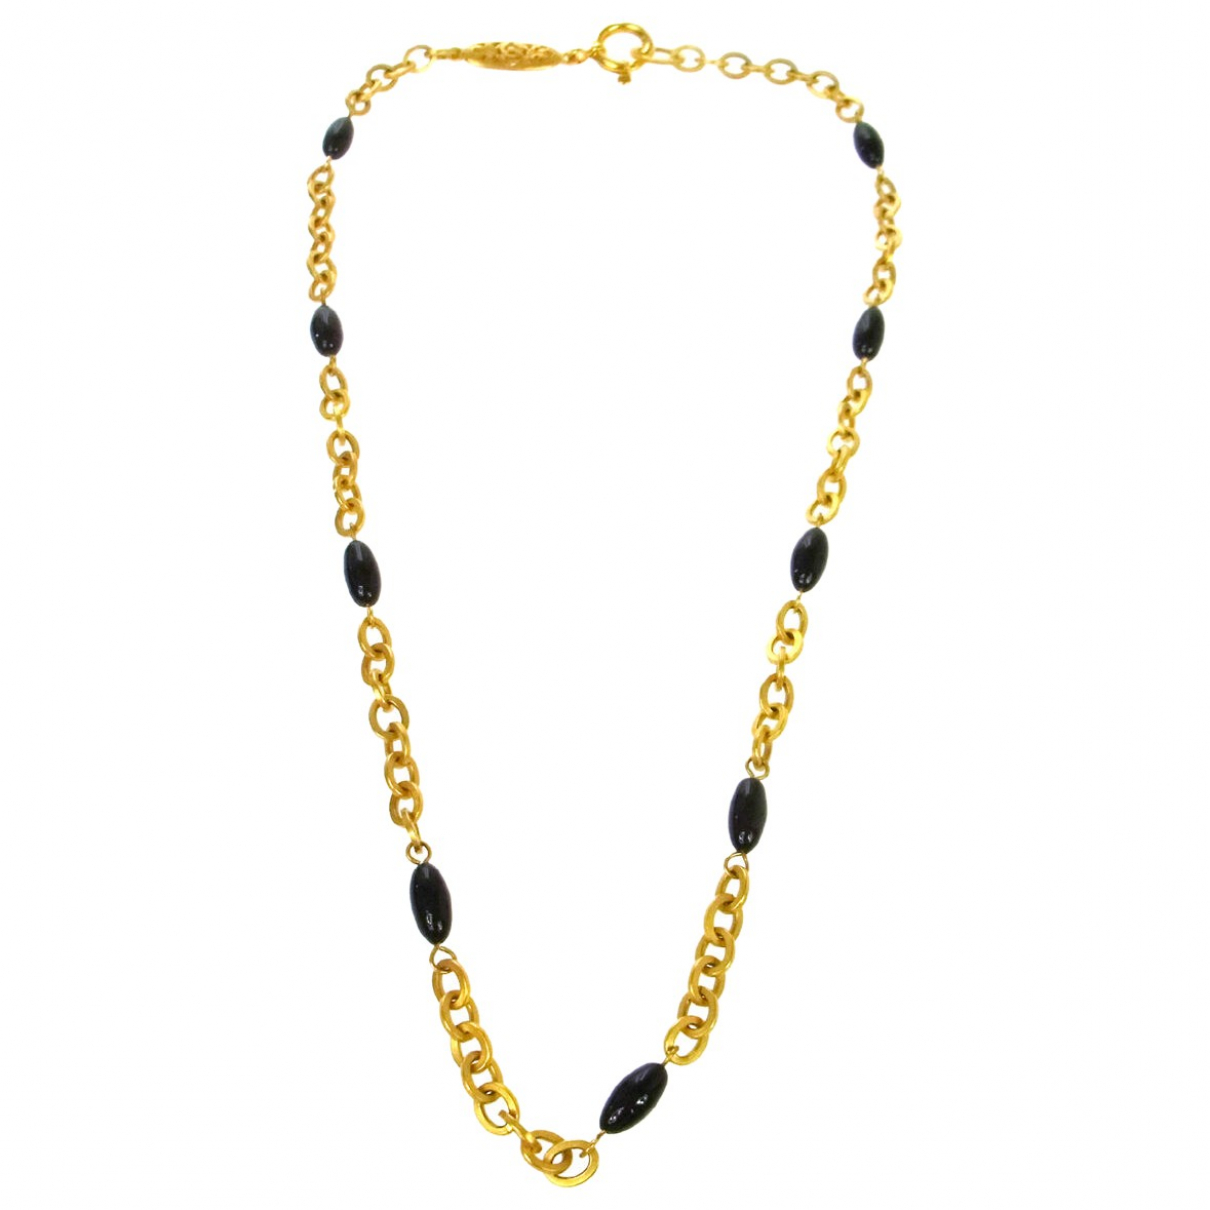 Chanel \N necklace for Women \N